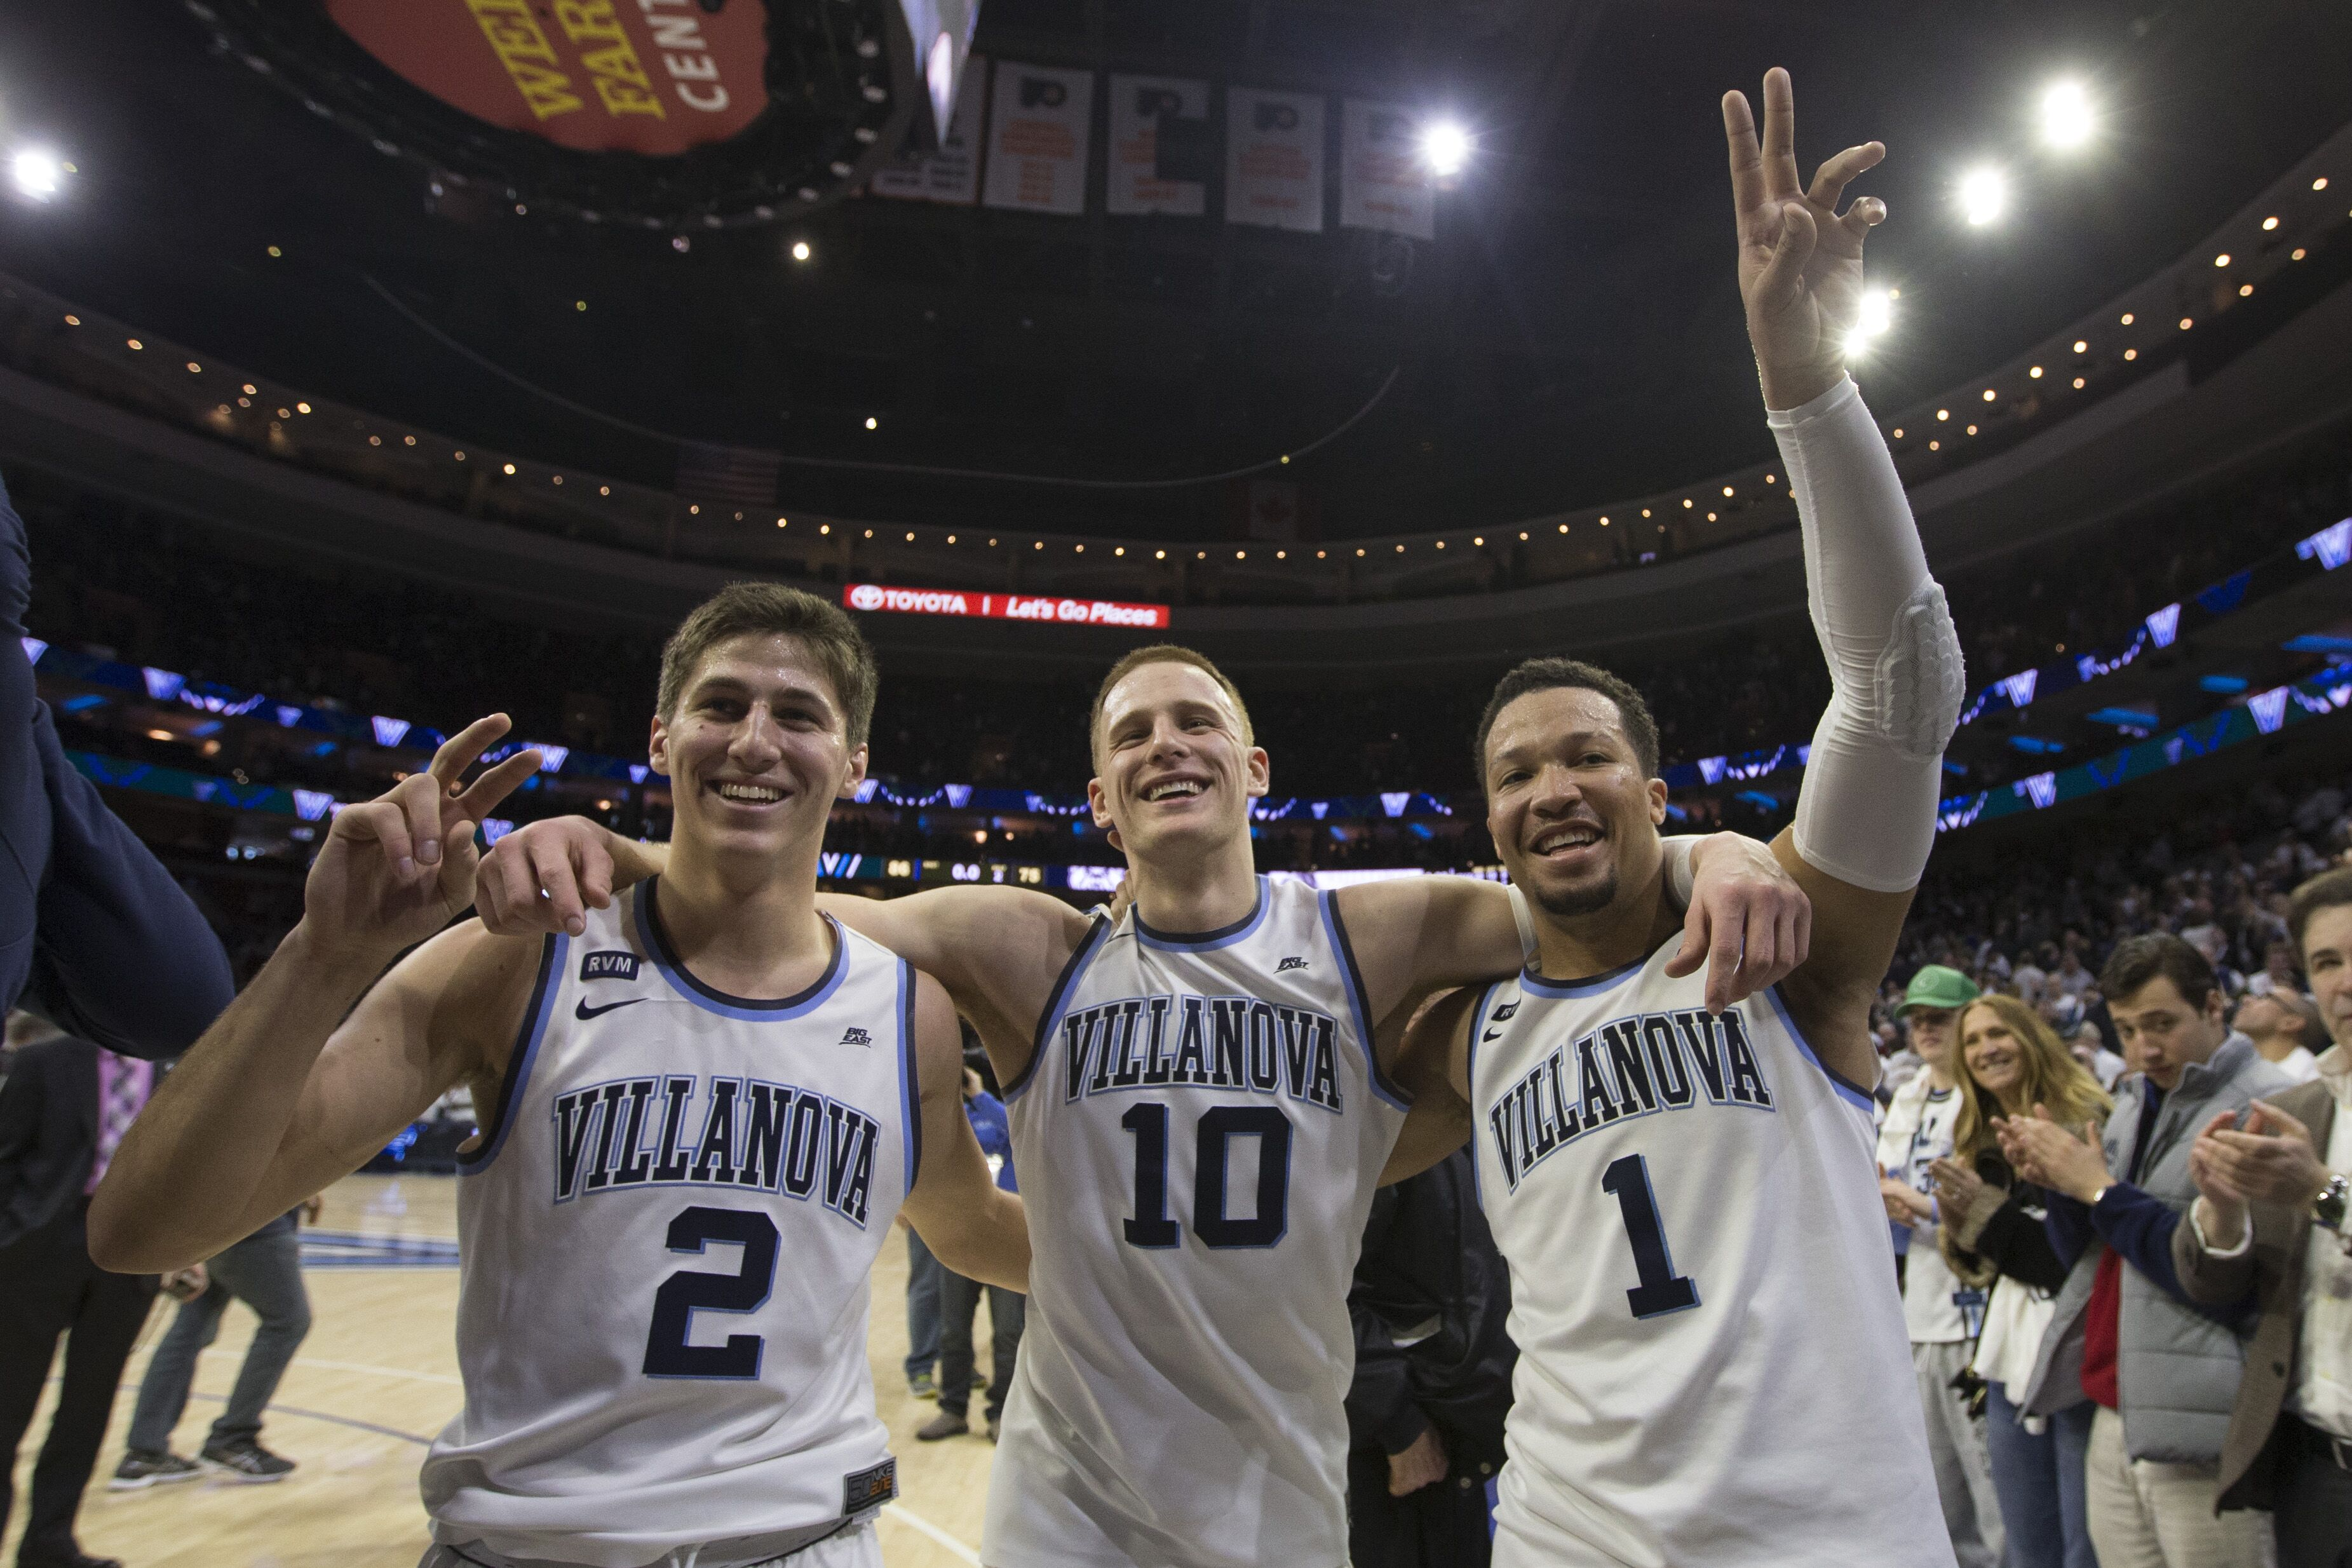 Villanova Basketball: The Wildcats bounces back against Butler